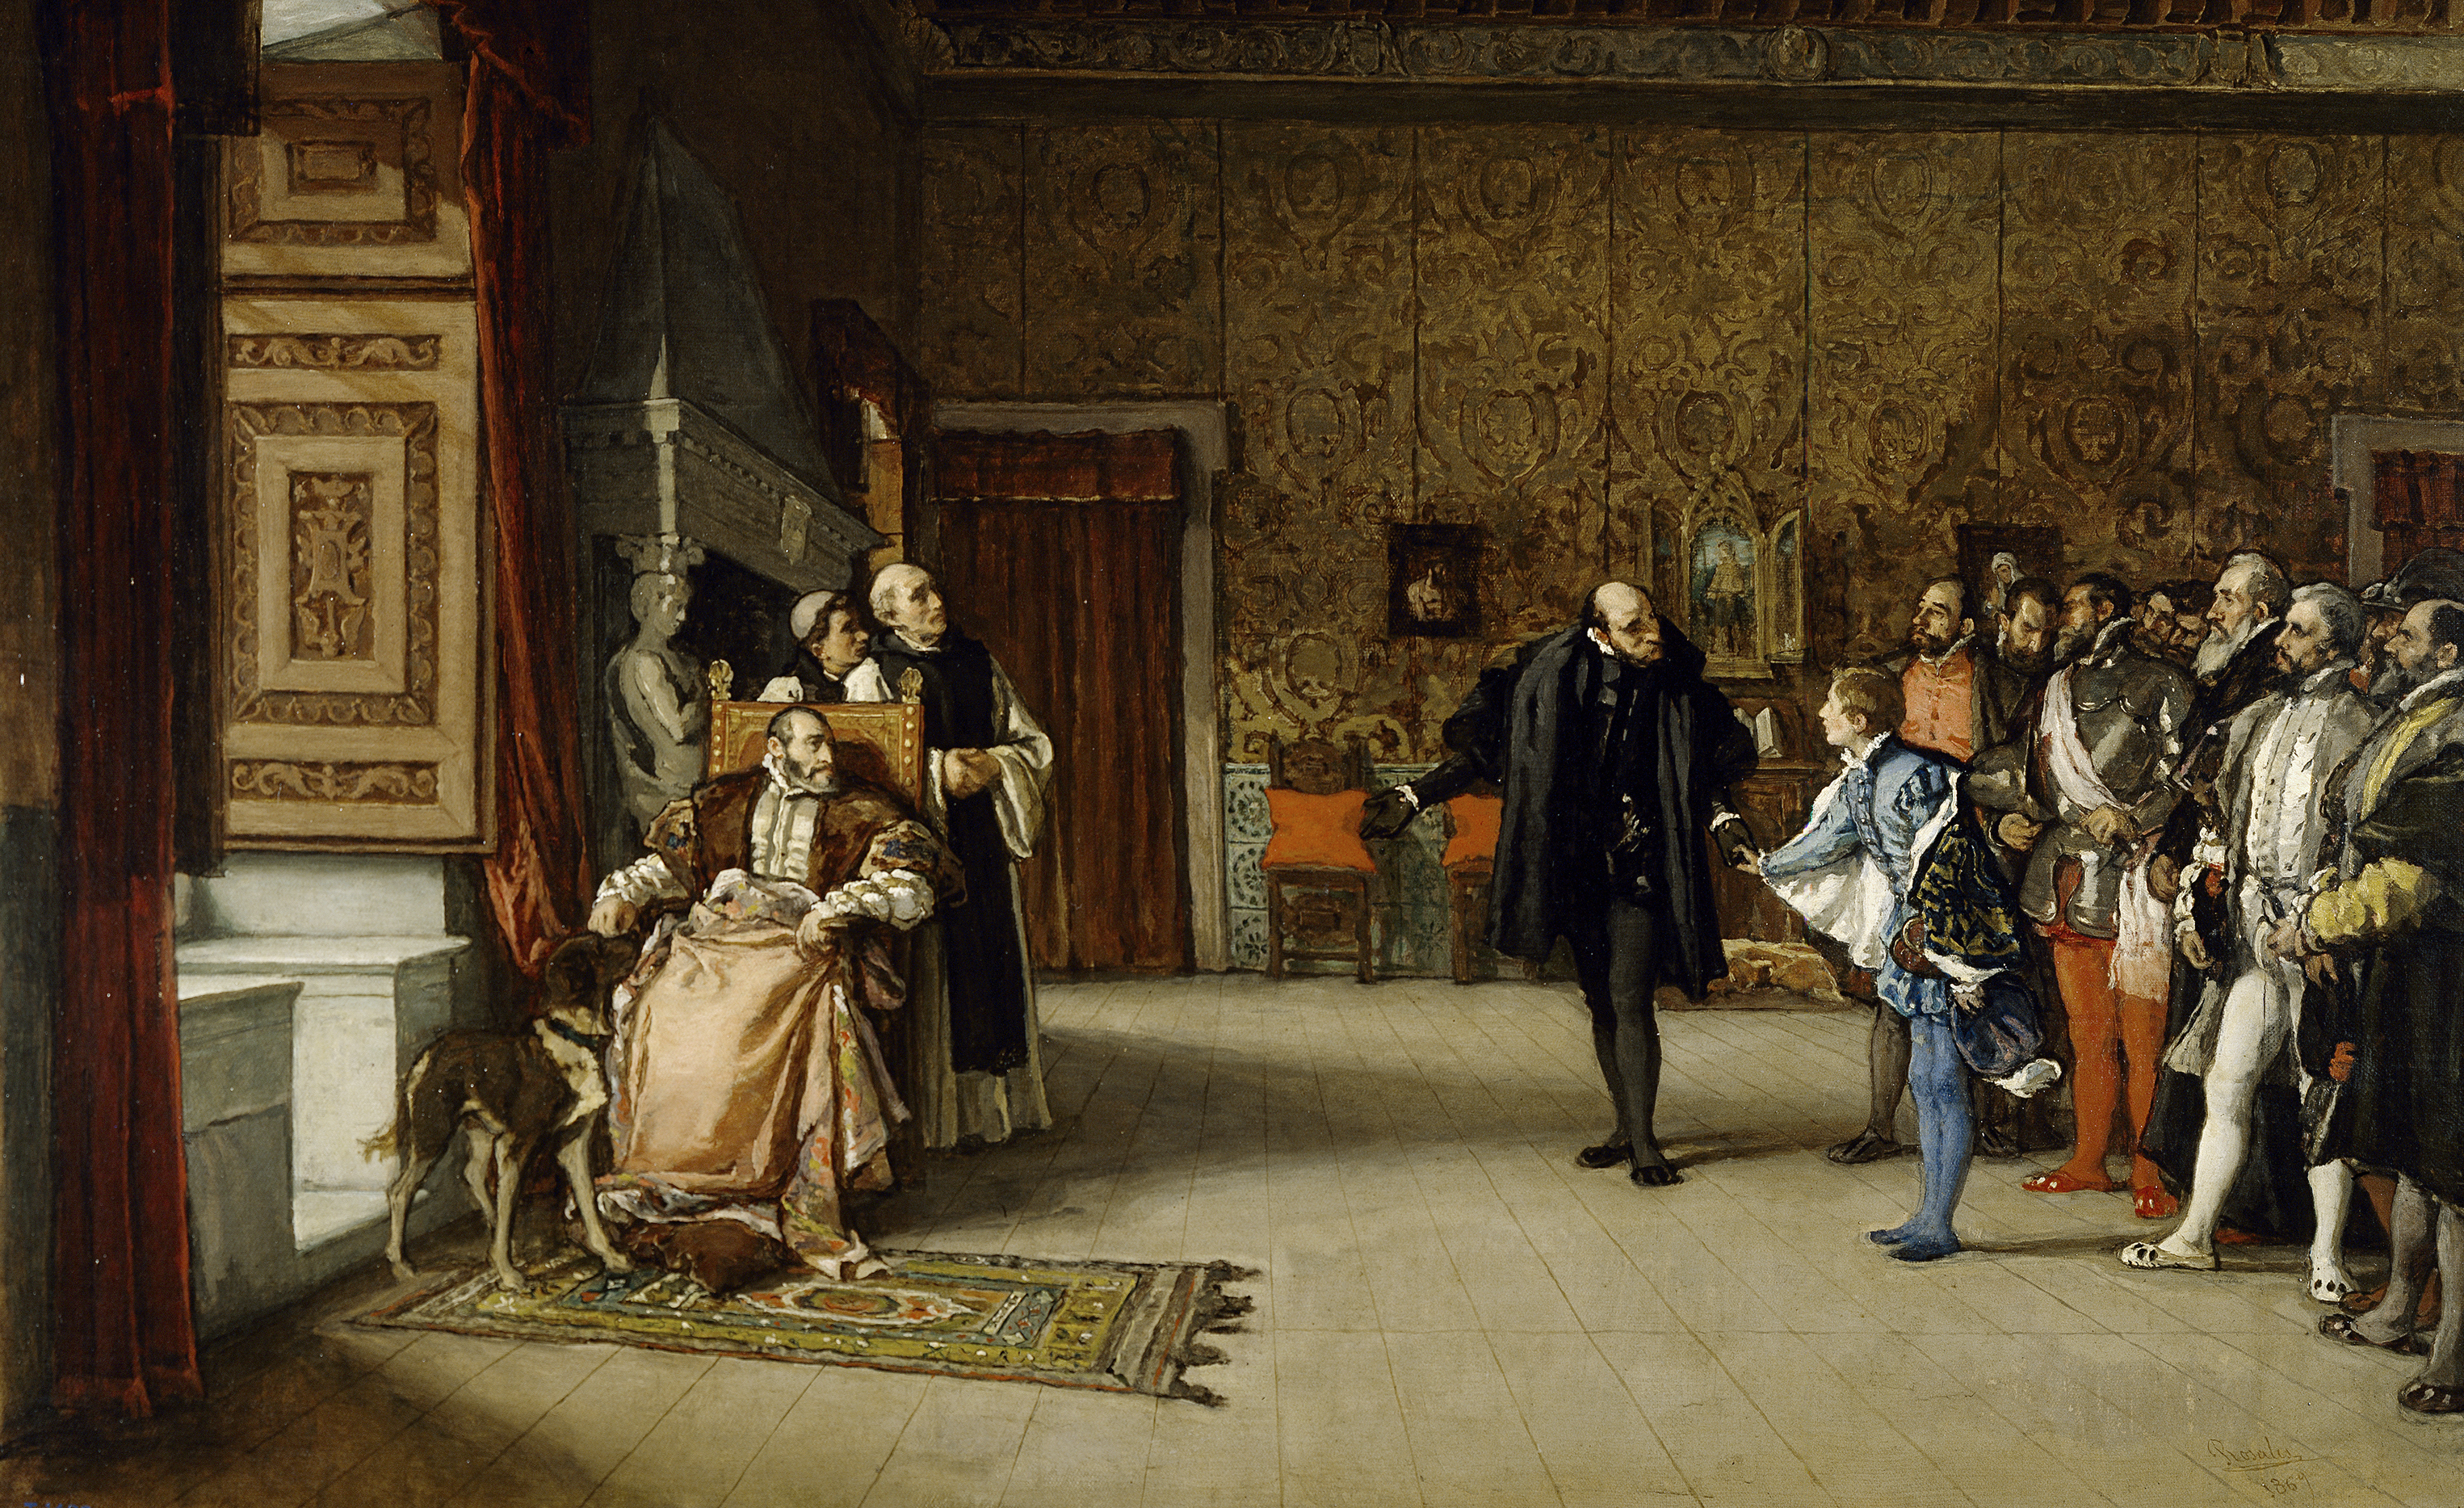 an analysis of the character of don juan de austria the english lord of austria Franz ferdinand, whose assassination sparked a world war during the olympic games in rio de janeiro  a sepia-colored character to be revered — lord olivier.